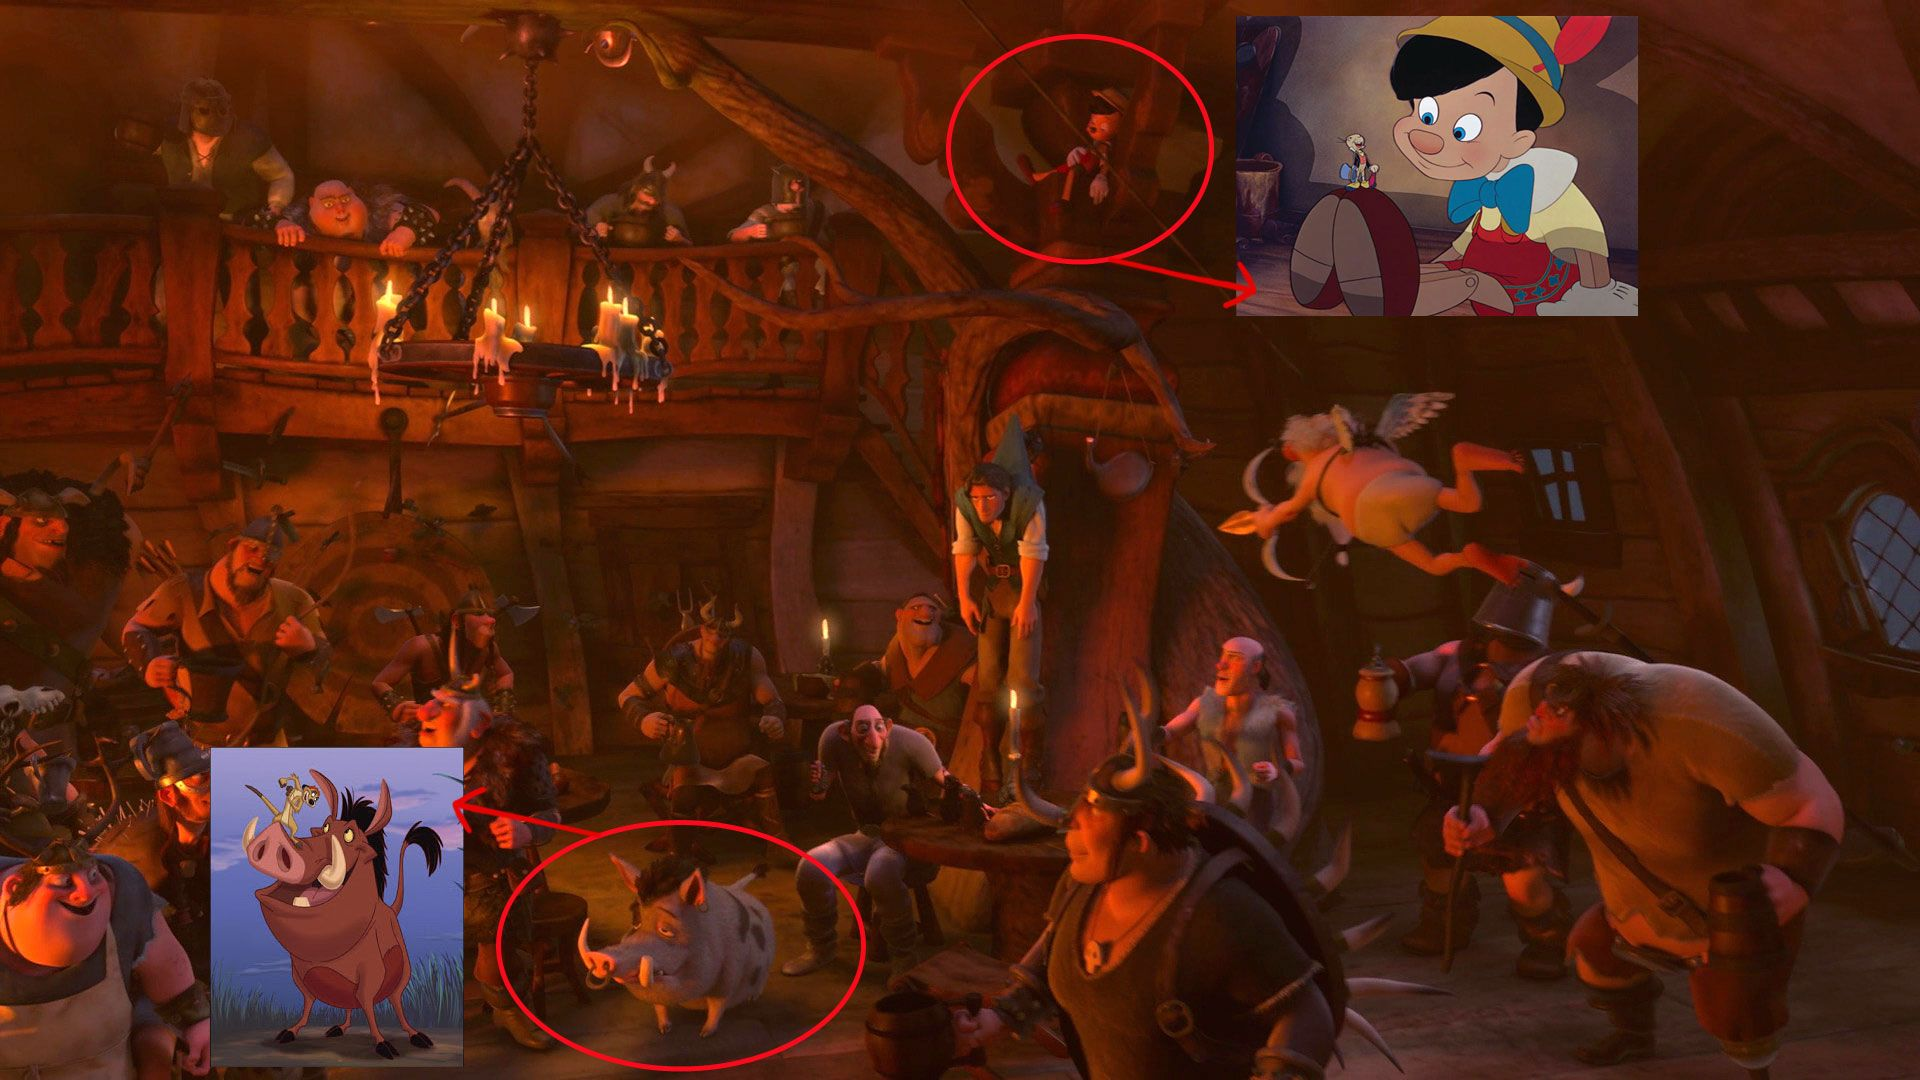 Pinocchio and Pumba in Tangled